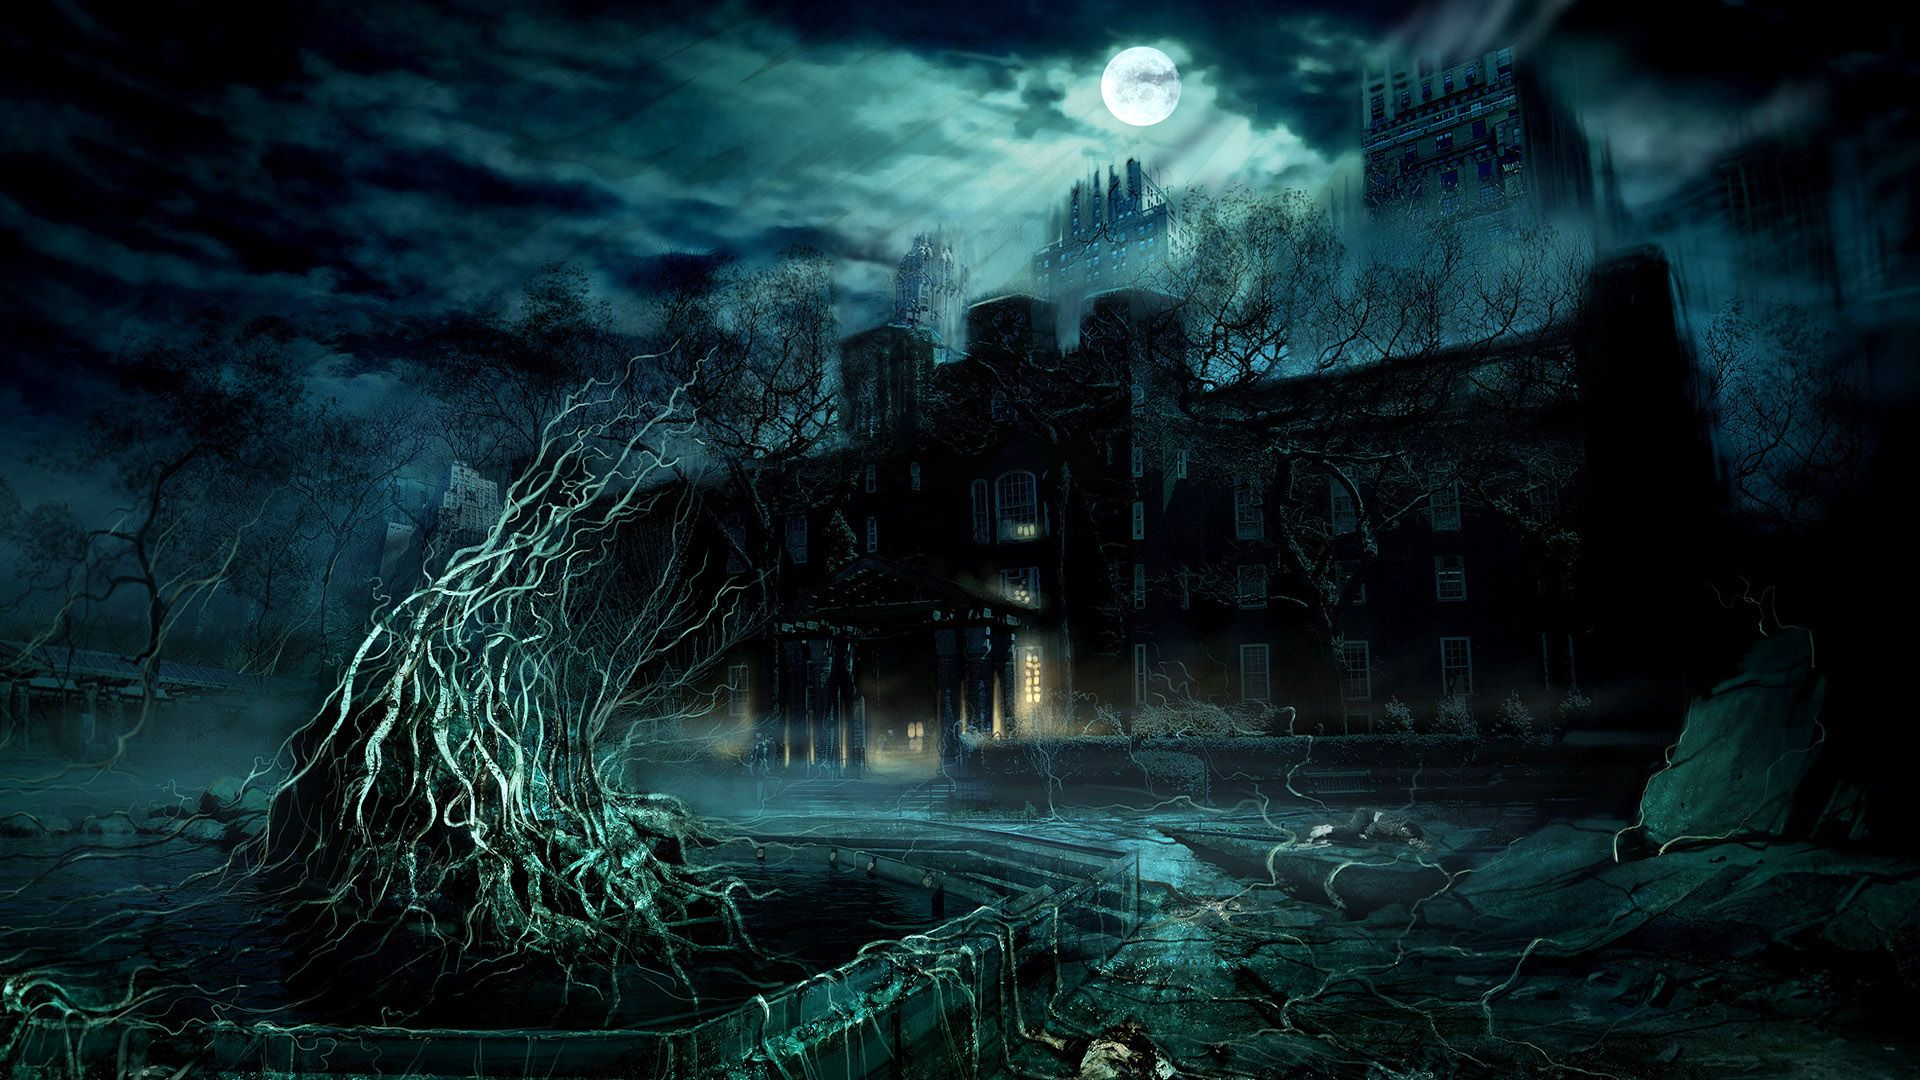 Fantasy Wallpaper Gothic Wallpaper Dark Wallpaper Alone In The Dark